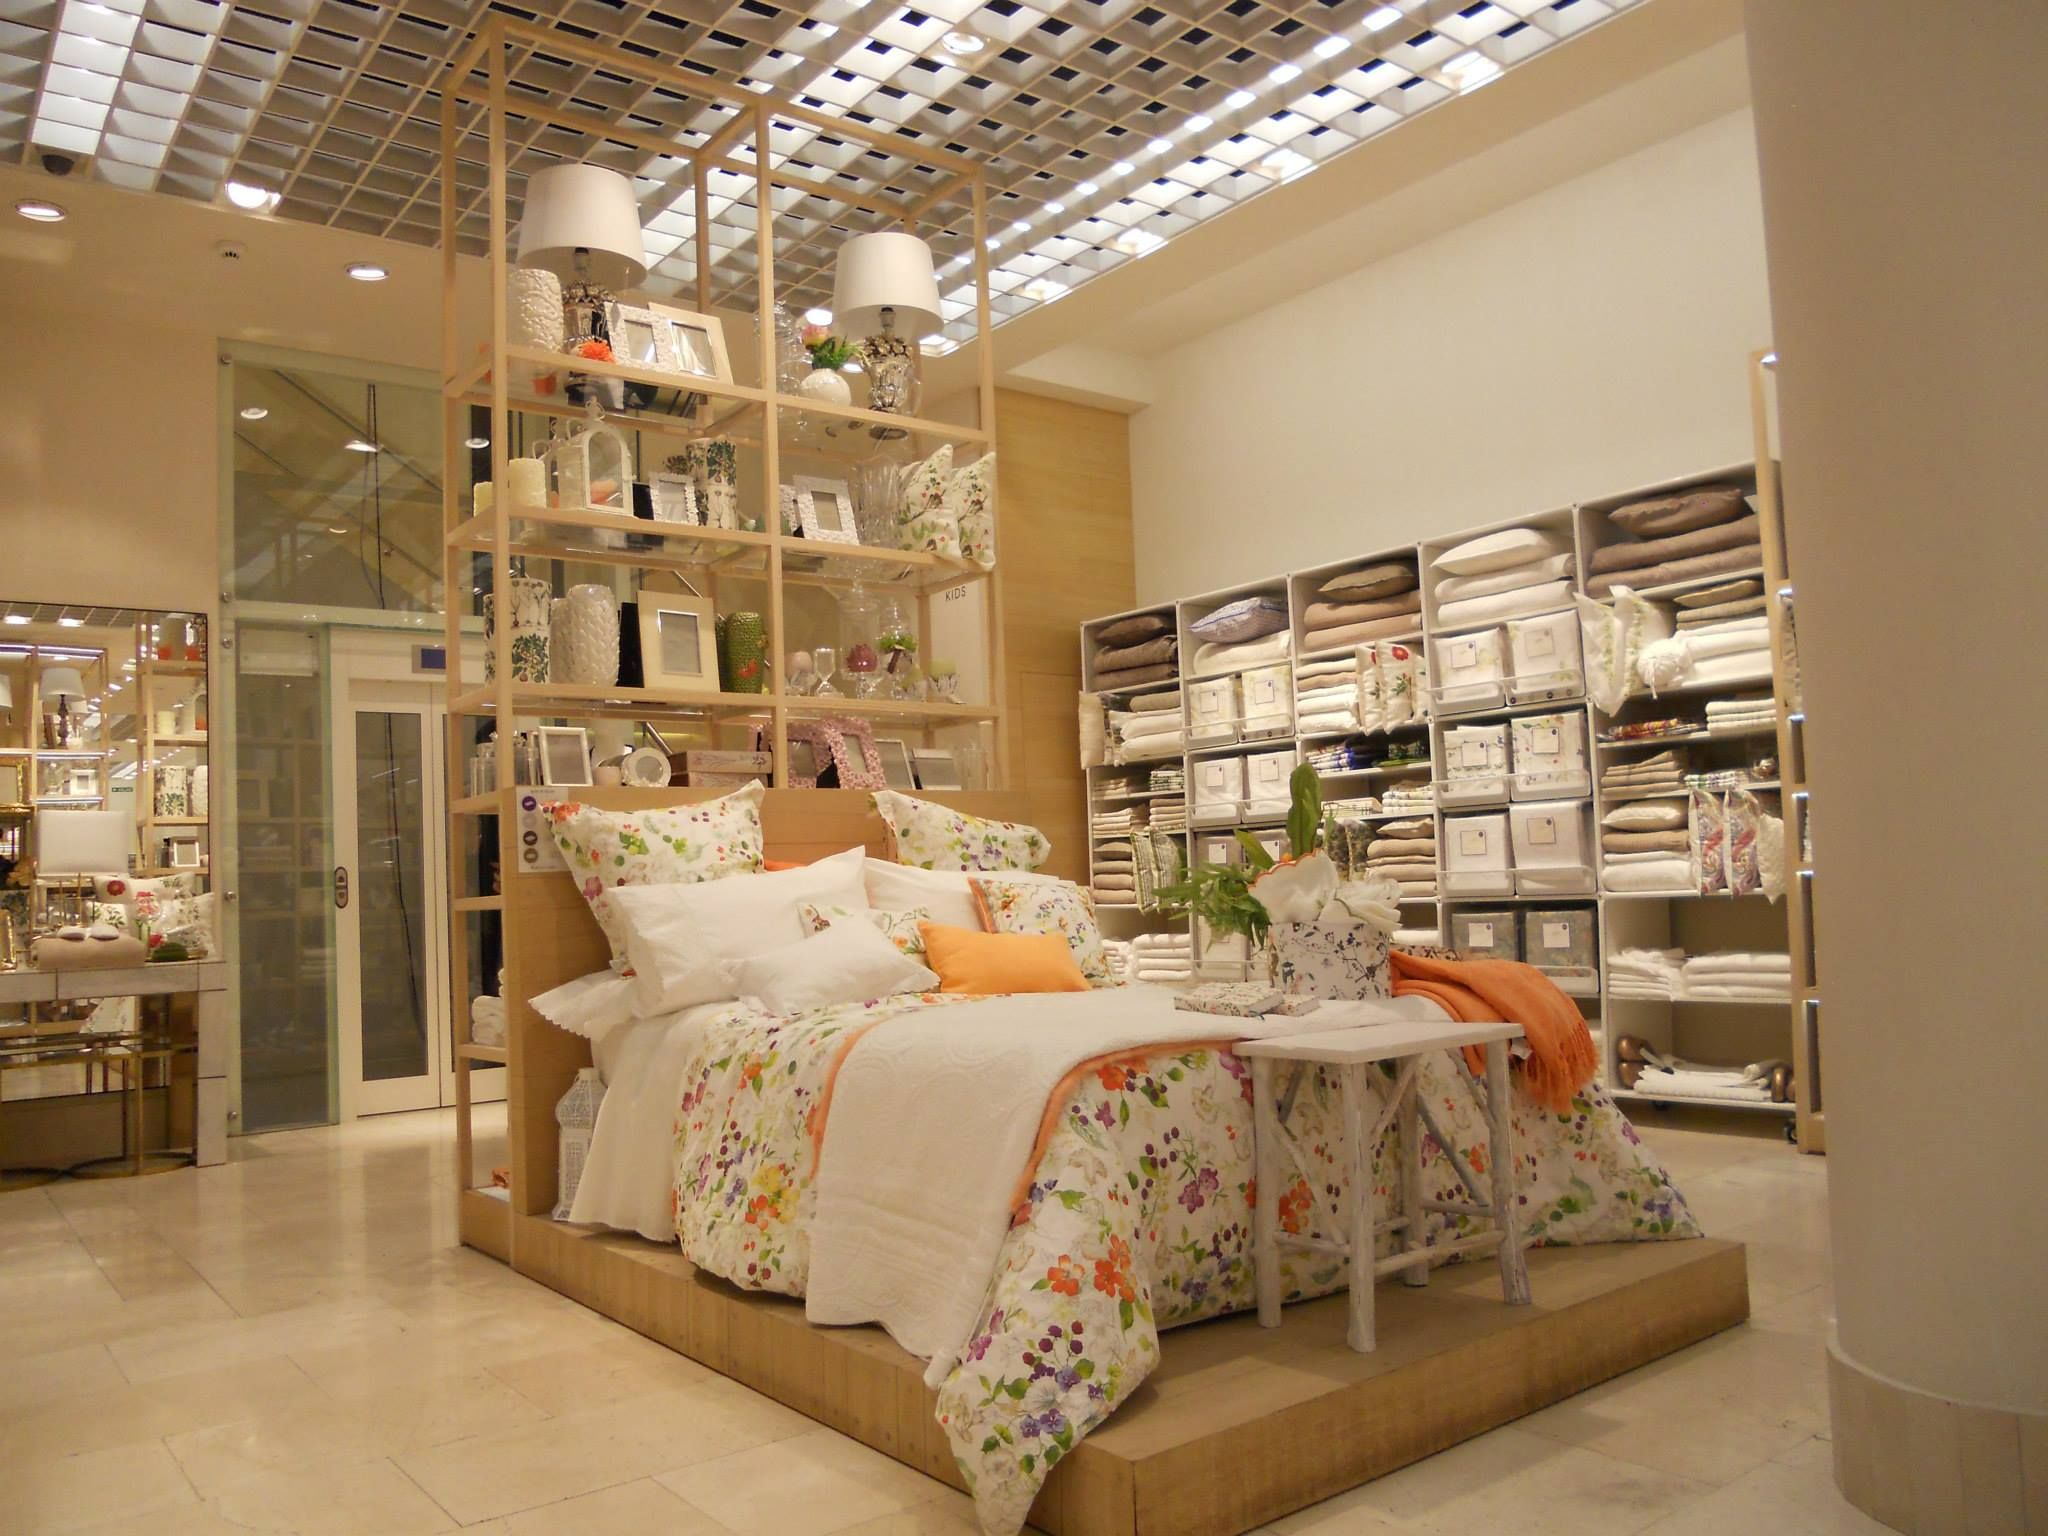 zara home escaparate interior escaparates interiores pinterest display and pallets. Black Bedroom Furniture Sets. Home Design Ideas